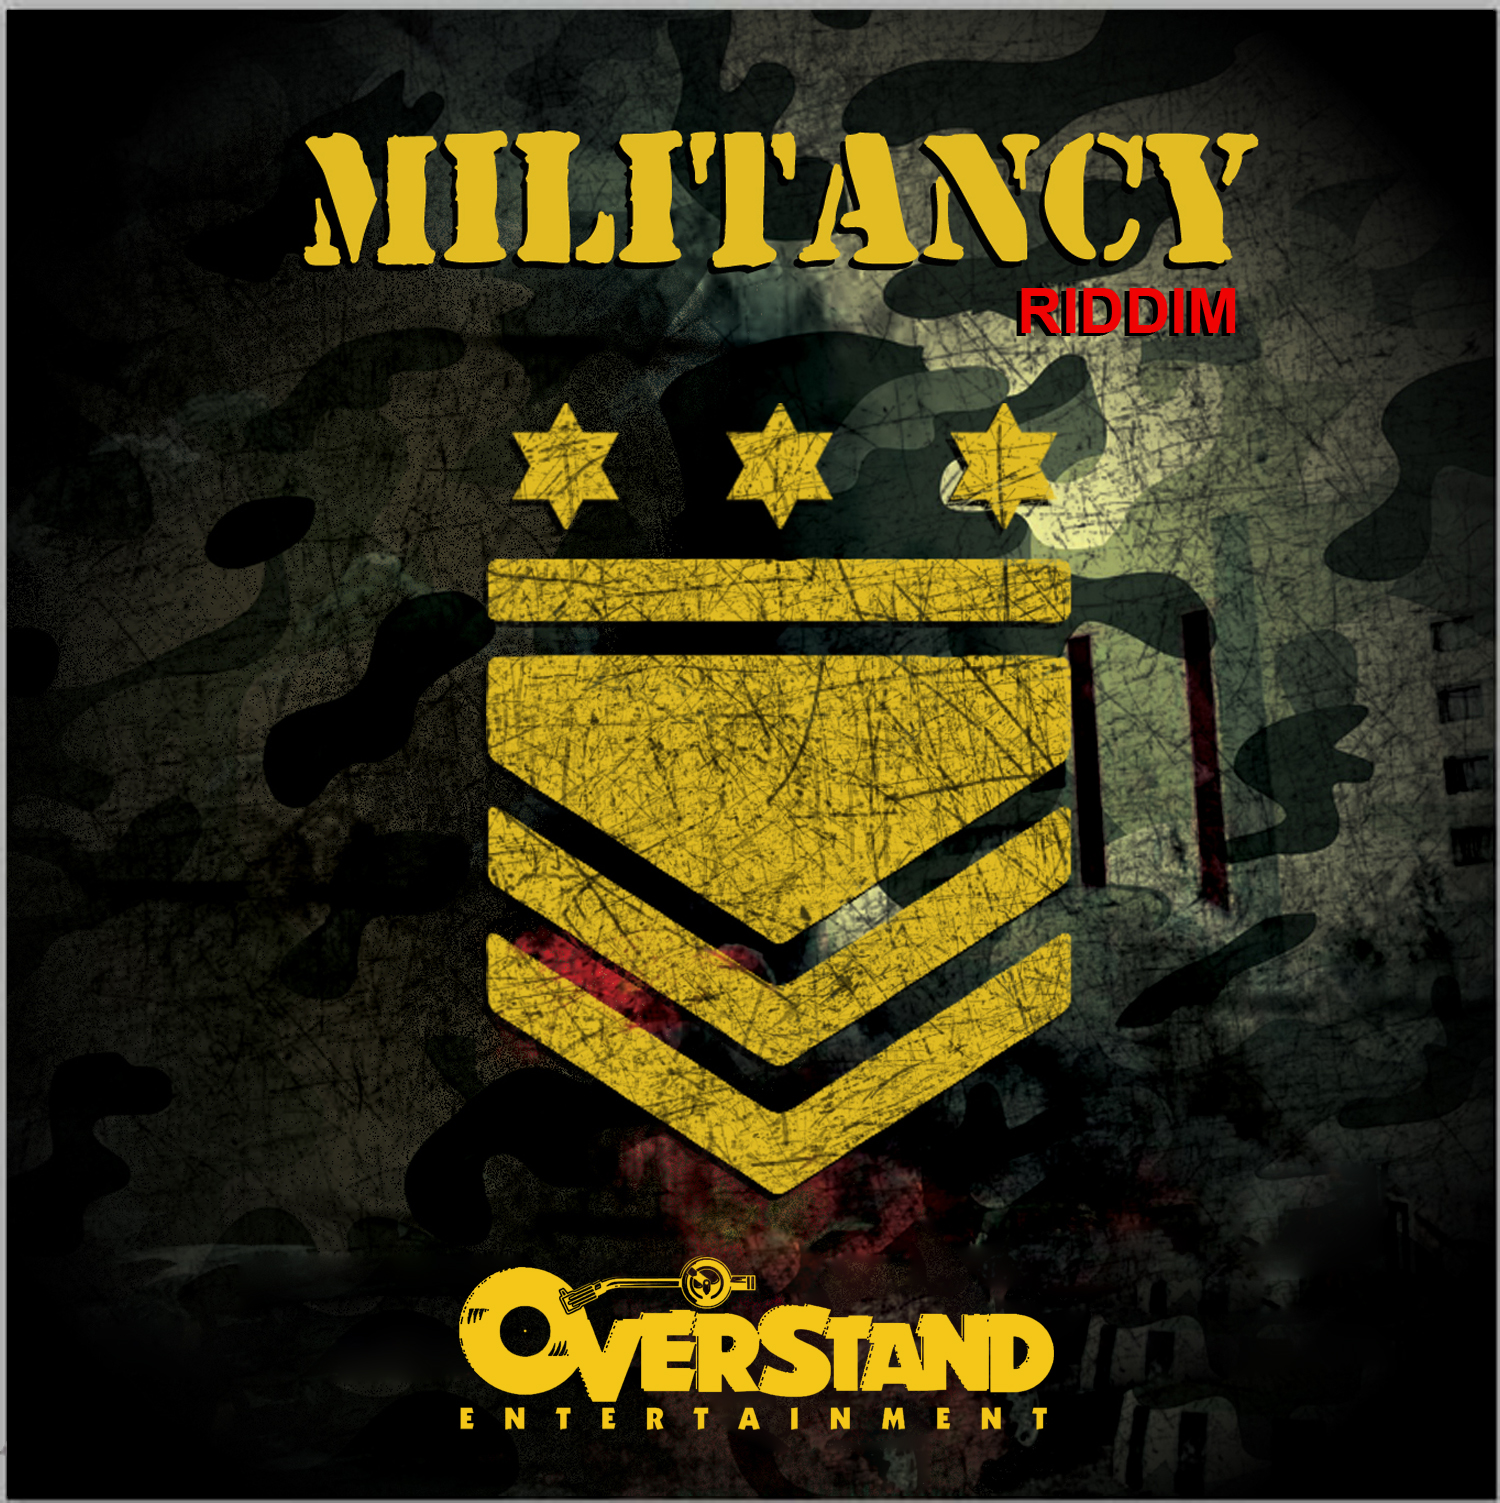 MILITANCY RIDDIM – OVERSTAND ENTERTAINMENT